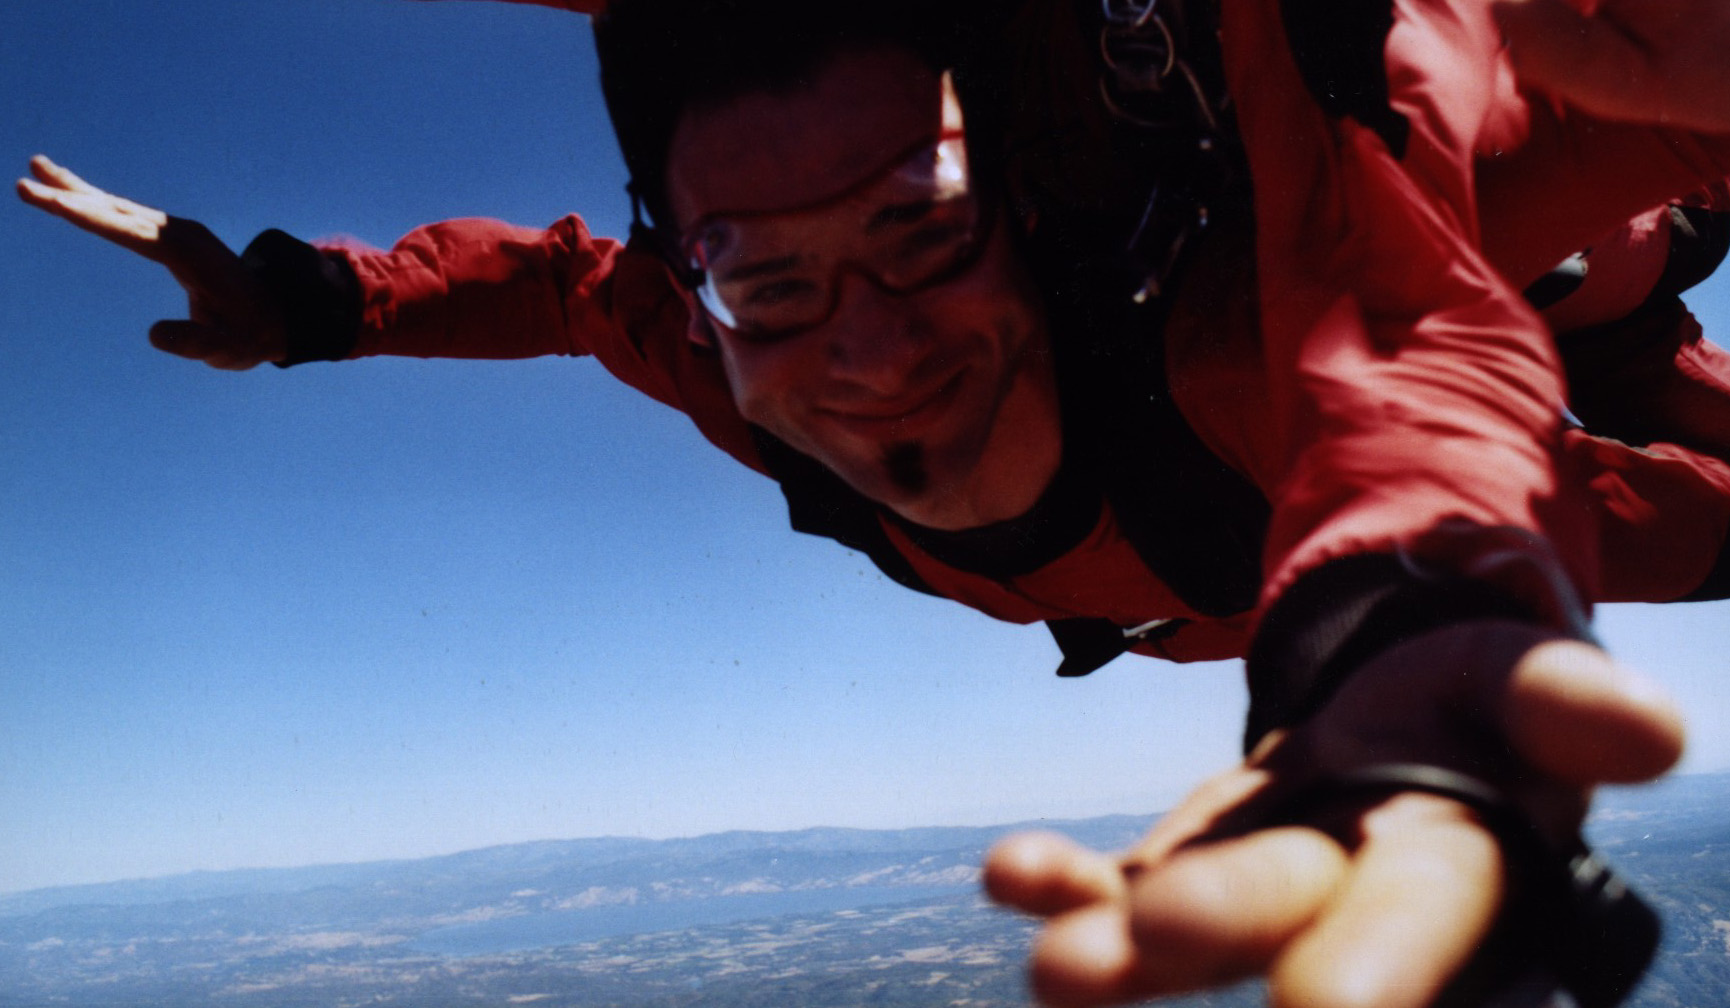 Description: http://www.heinz.cmu.edu/~acquisti/pics/skydiving-crop.JPG